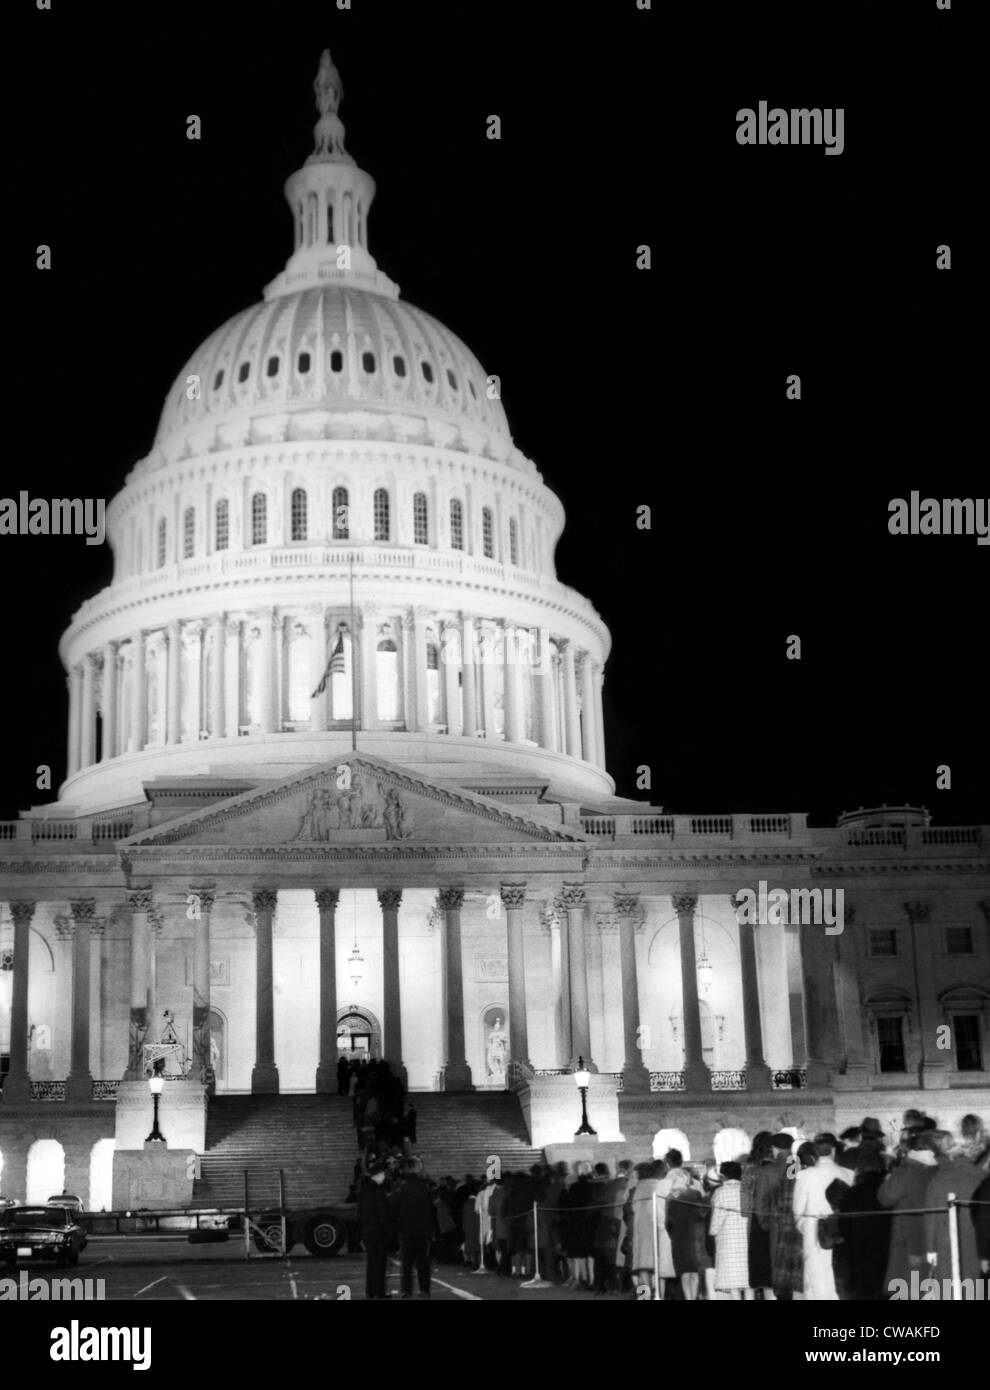 The dome of the U.S. Capitol is illuminated to pay respects to the assassinated President, John F. Kennedy, Washington - Stock Image